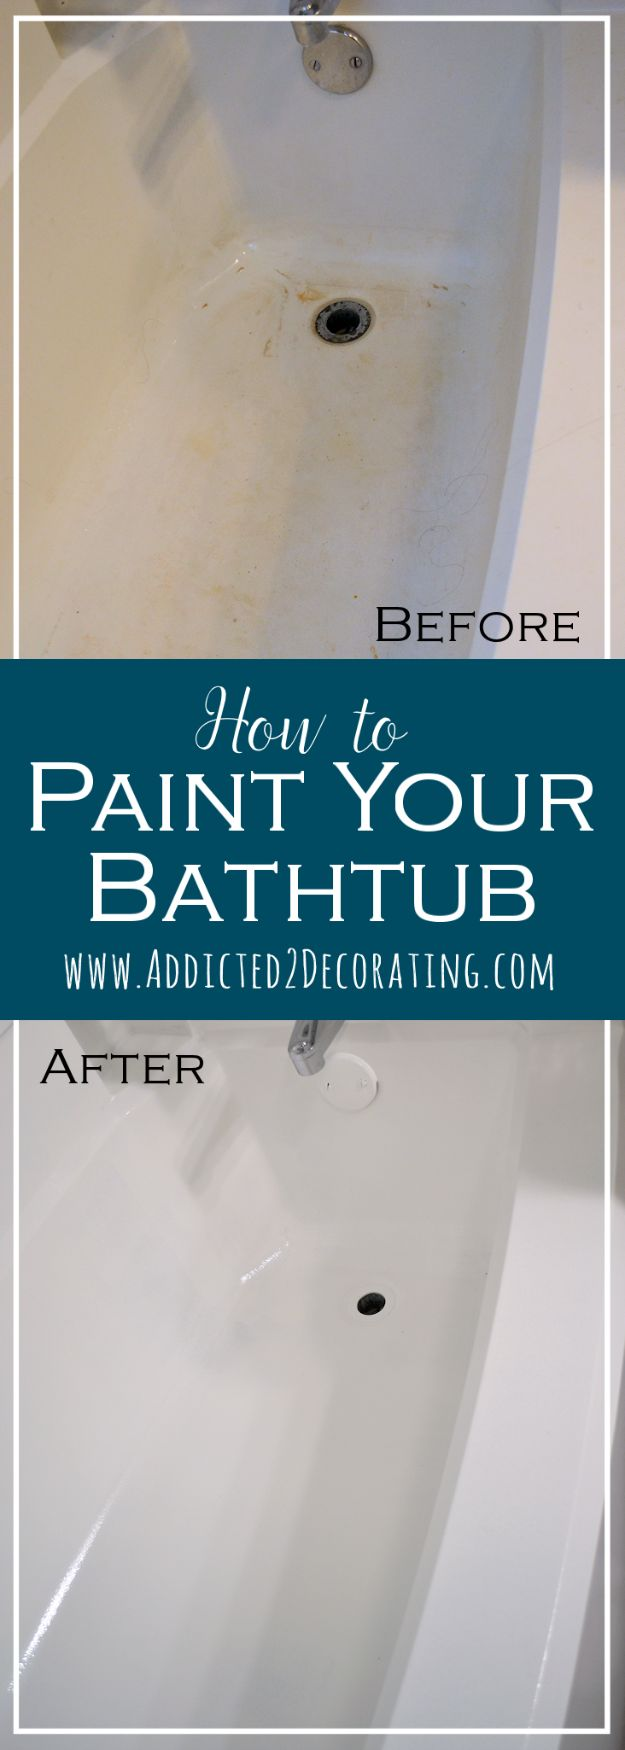 Easy Home Repair Hacks - Paint A Bath Tub - Quick Ways To Fix Your Home With Cheap and Fast DIY Projects - Step by step Tutorials, Good Ideas for Renovating, Simple Tips and Tricks for Home Improvement on A Budget #diy #homeimprovement